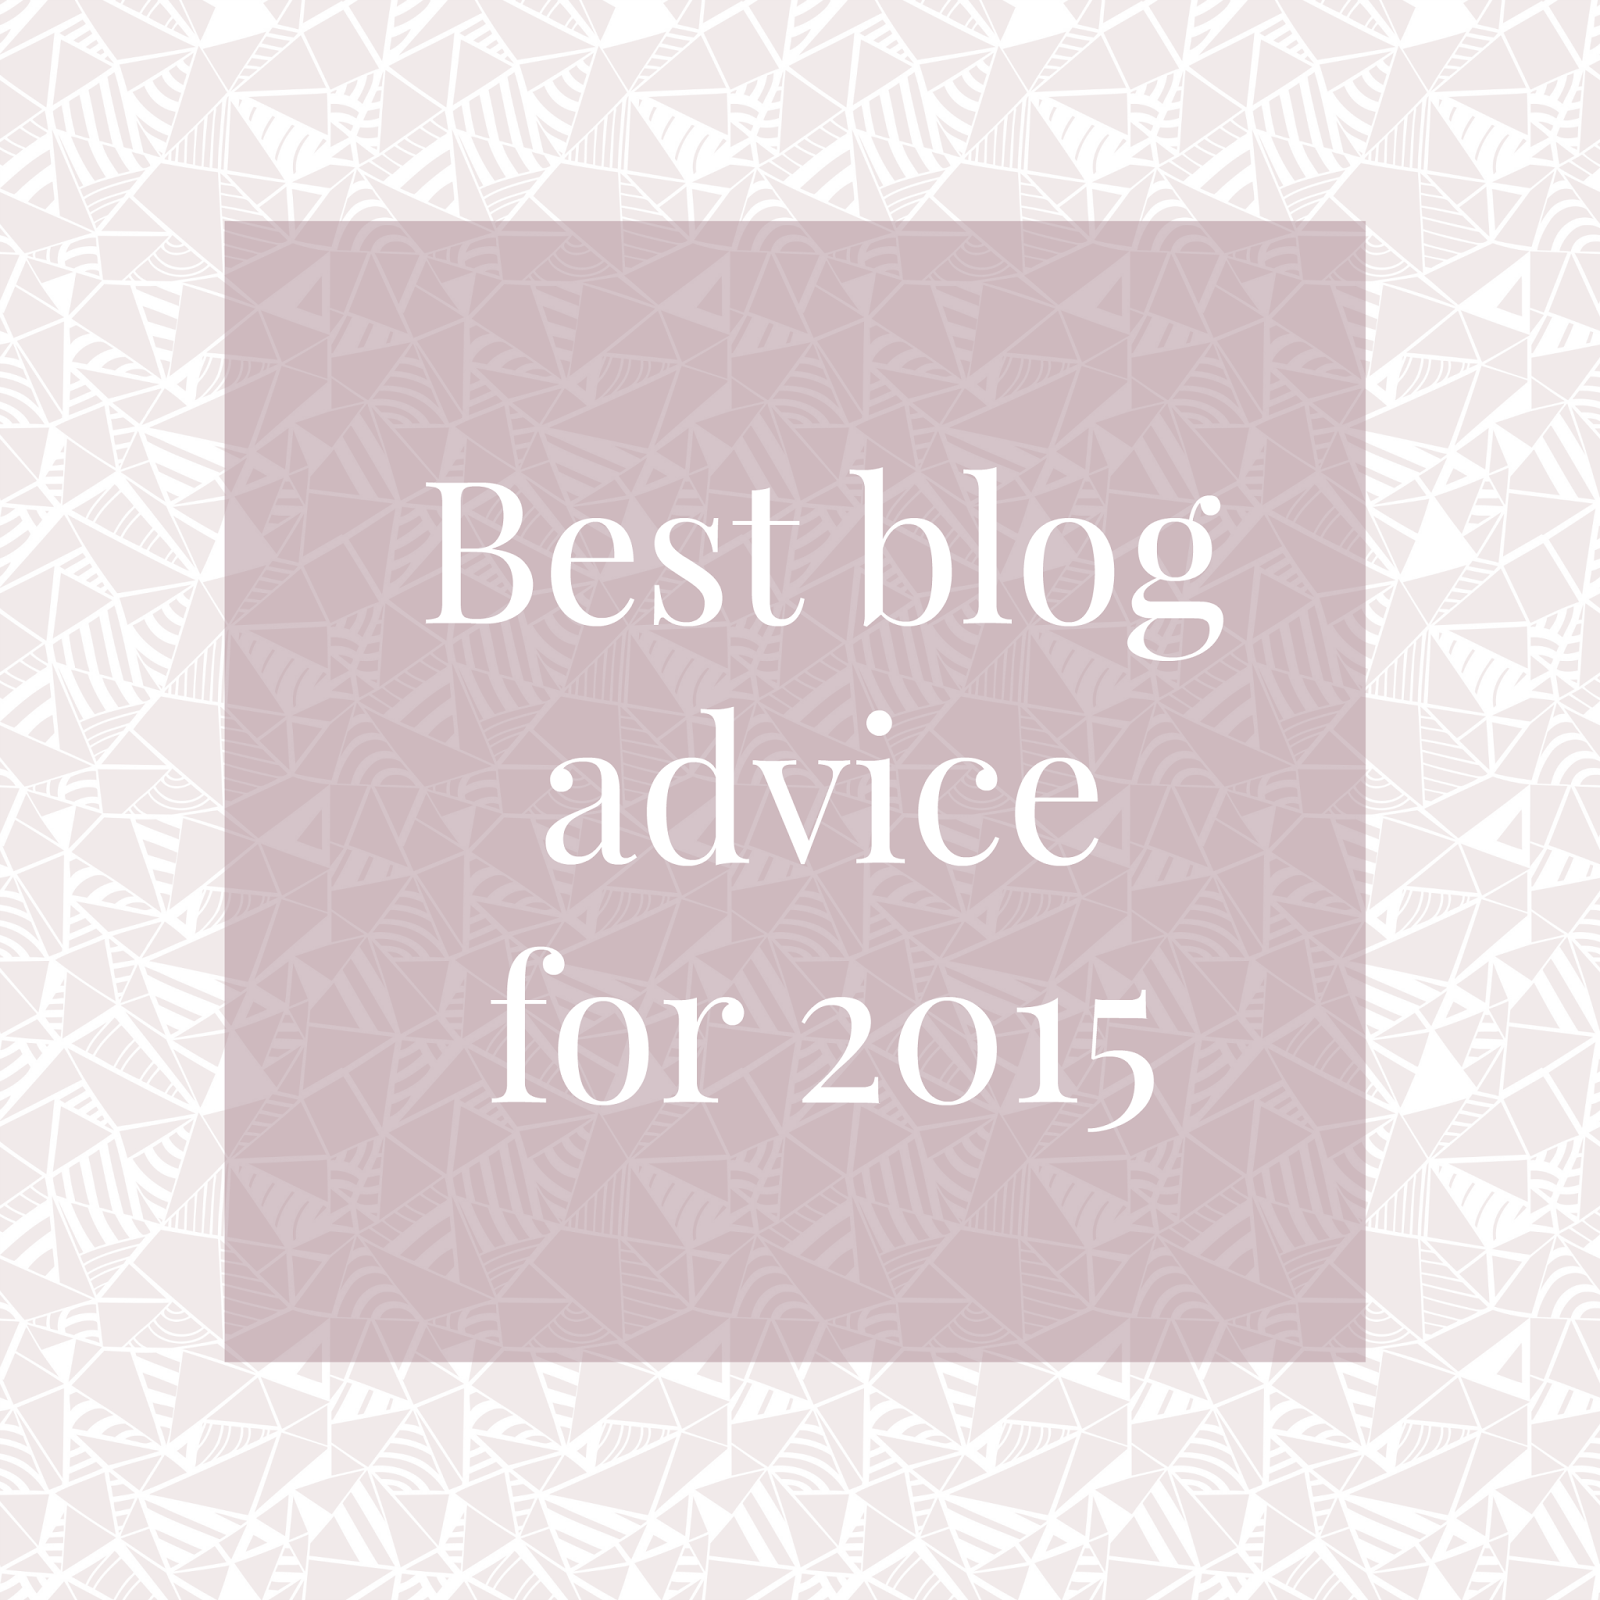 sweet electric.: Bettering Your Blog in 2015 & Some Amazing Blogging Advice